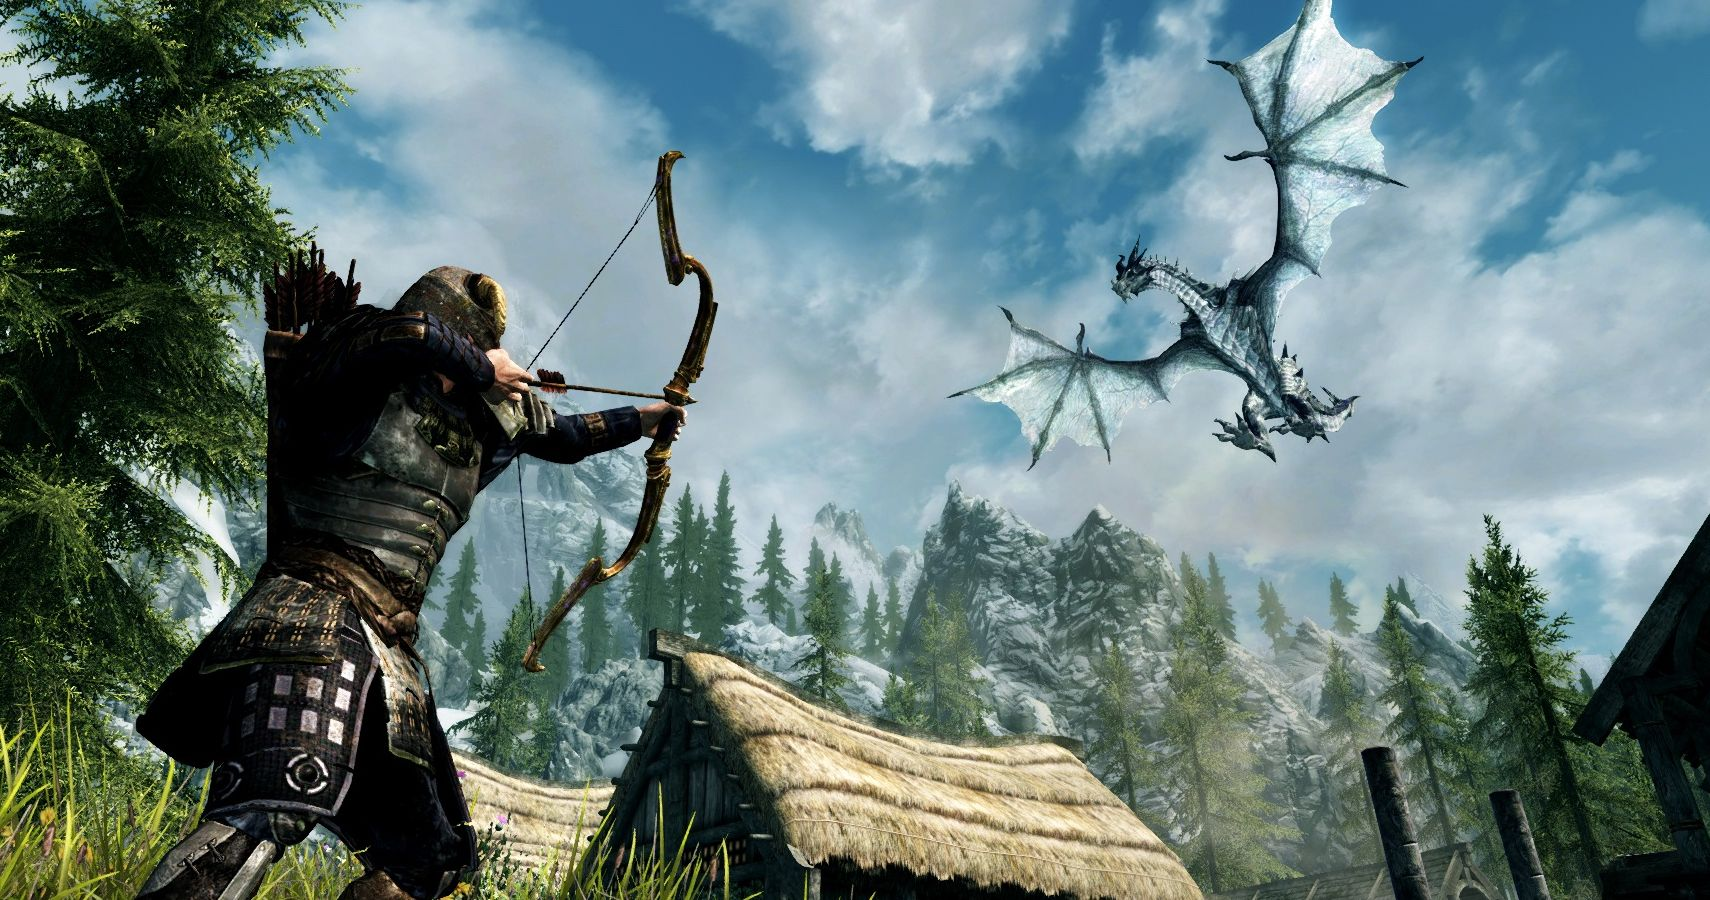 15 Skyrim Tricks That Still Work (And 10 That Got Banned)